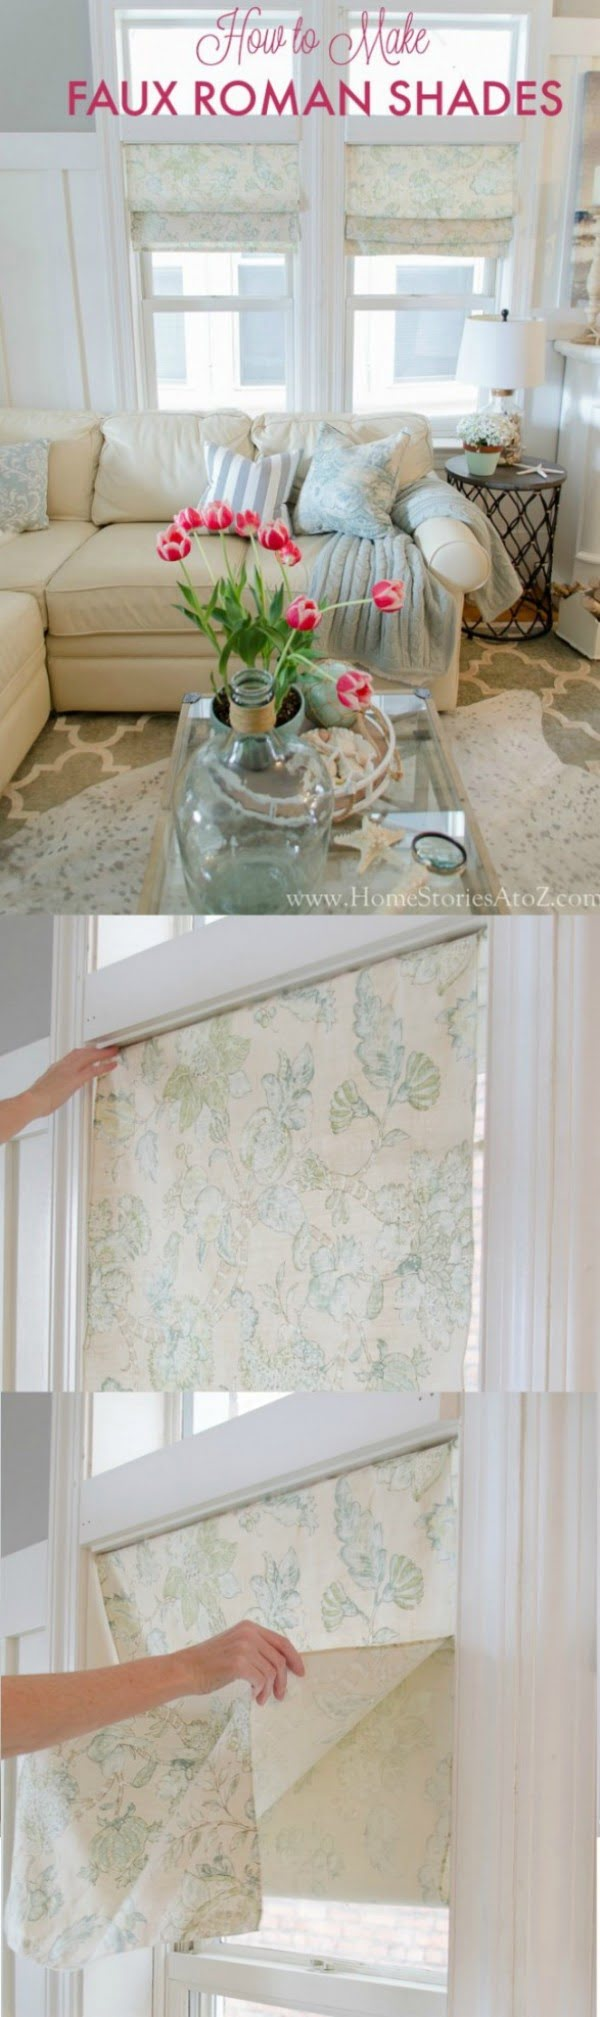 Check out this easy idea on how to make #DIY faux roman shades #homedecor for #renters #crafts #project